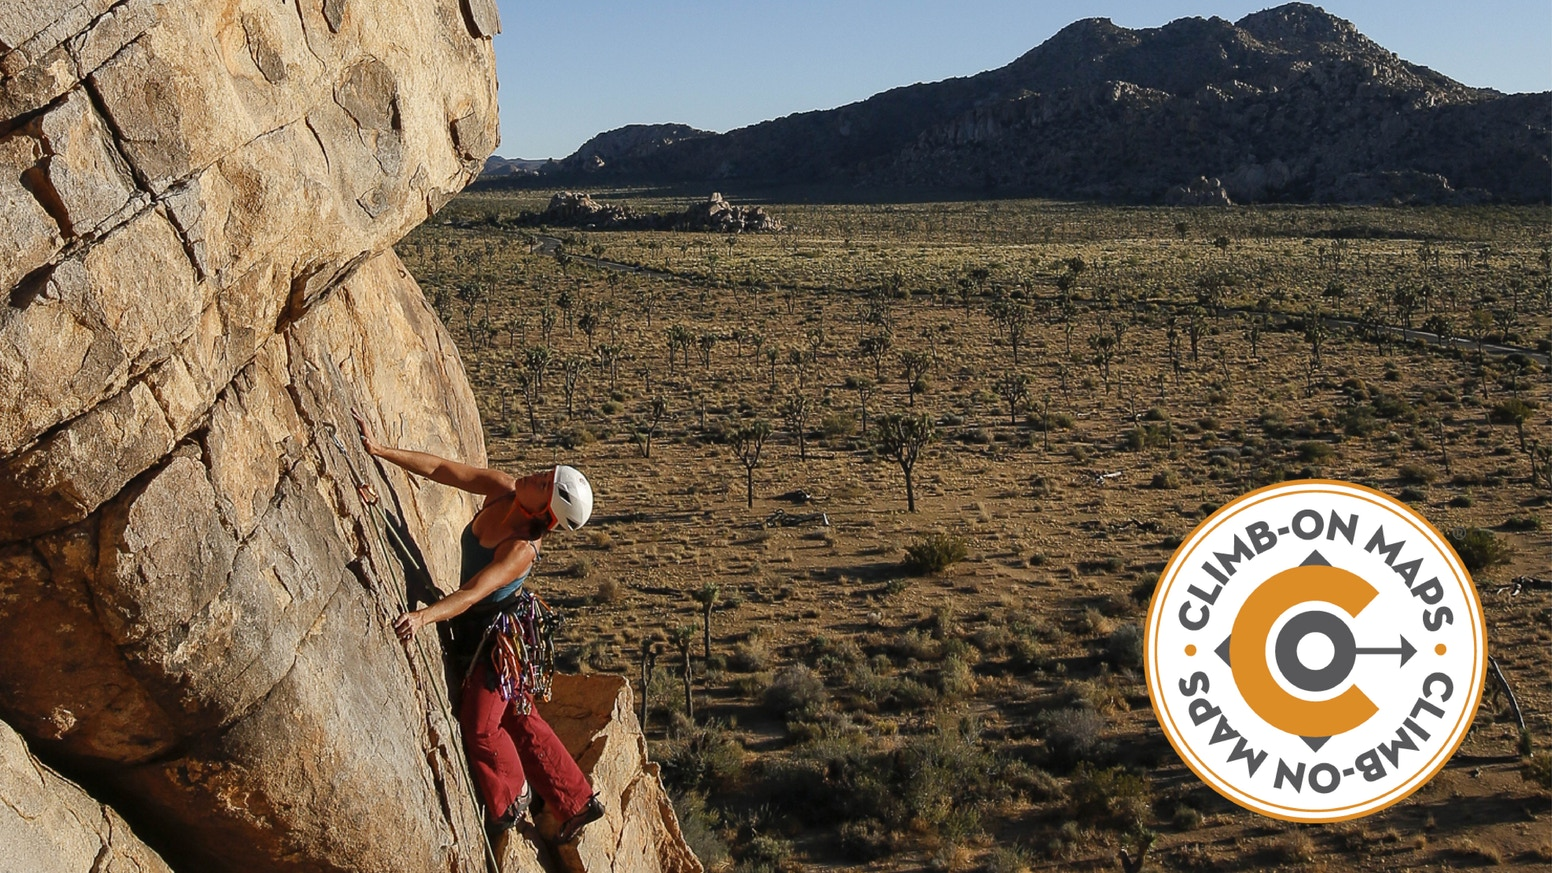 We go to climb, not waste time! Navigate this amazing area like a pro!